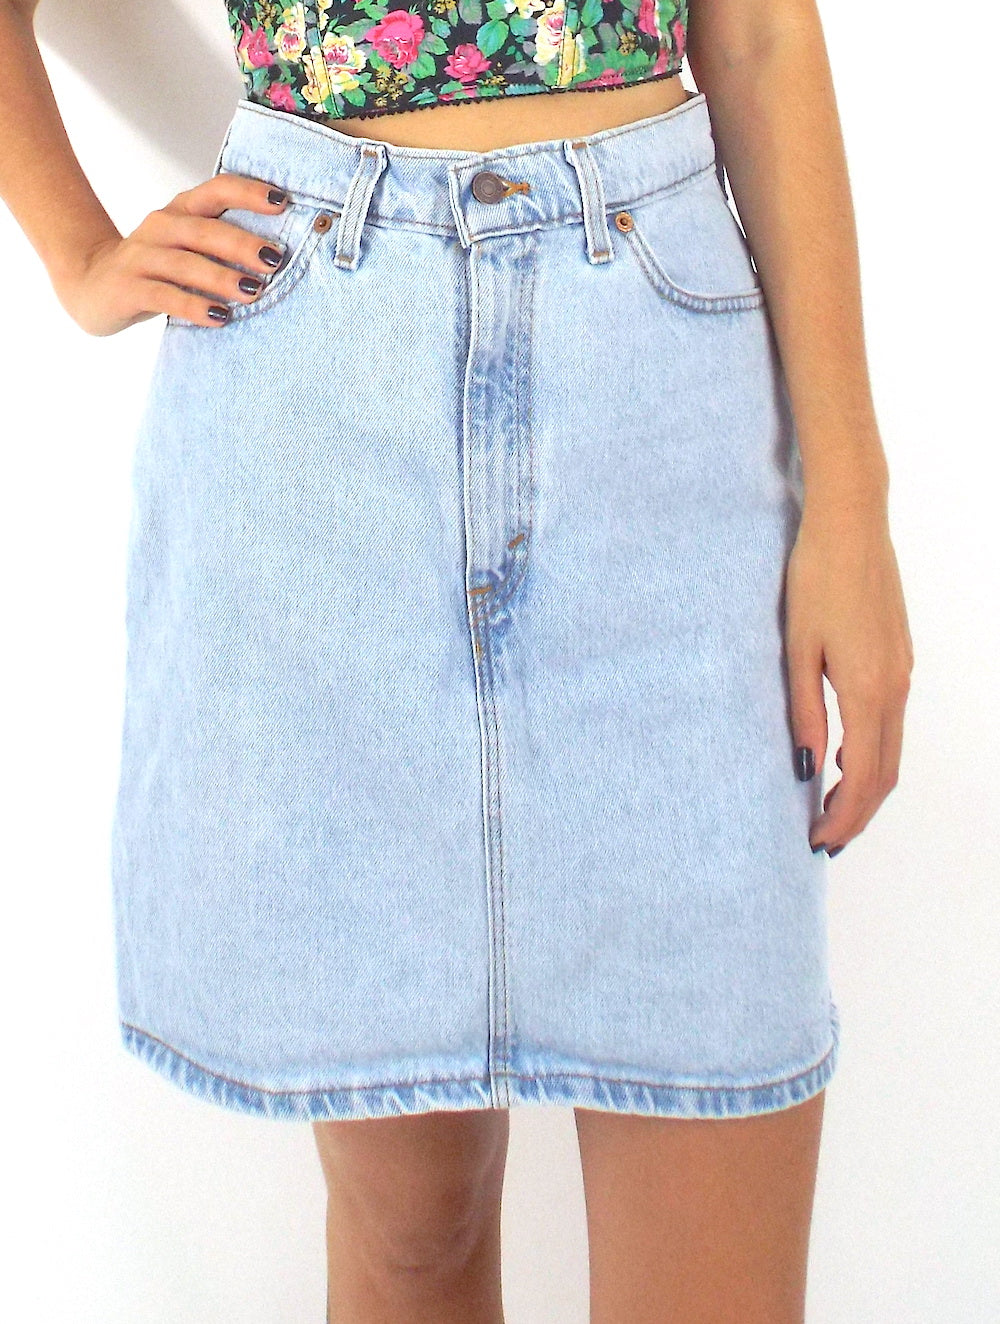 Vintage 90s Light Wash Levi's High-Waist Denim A Line Skirt Size Medium